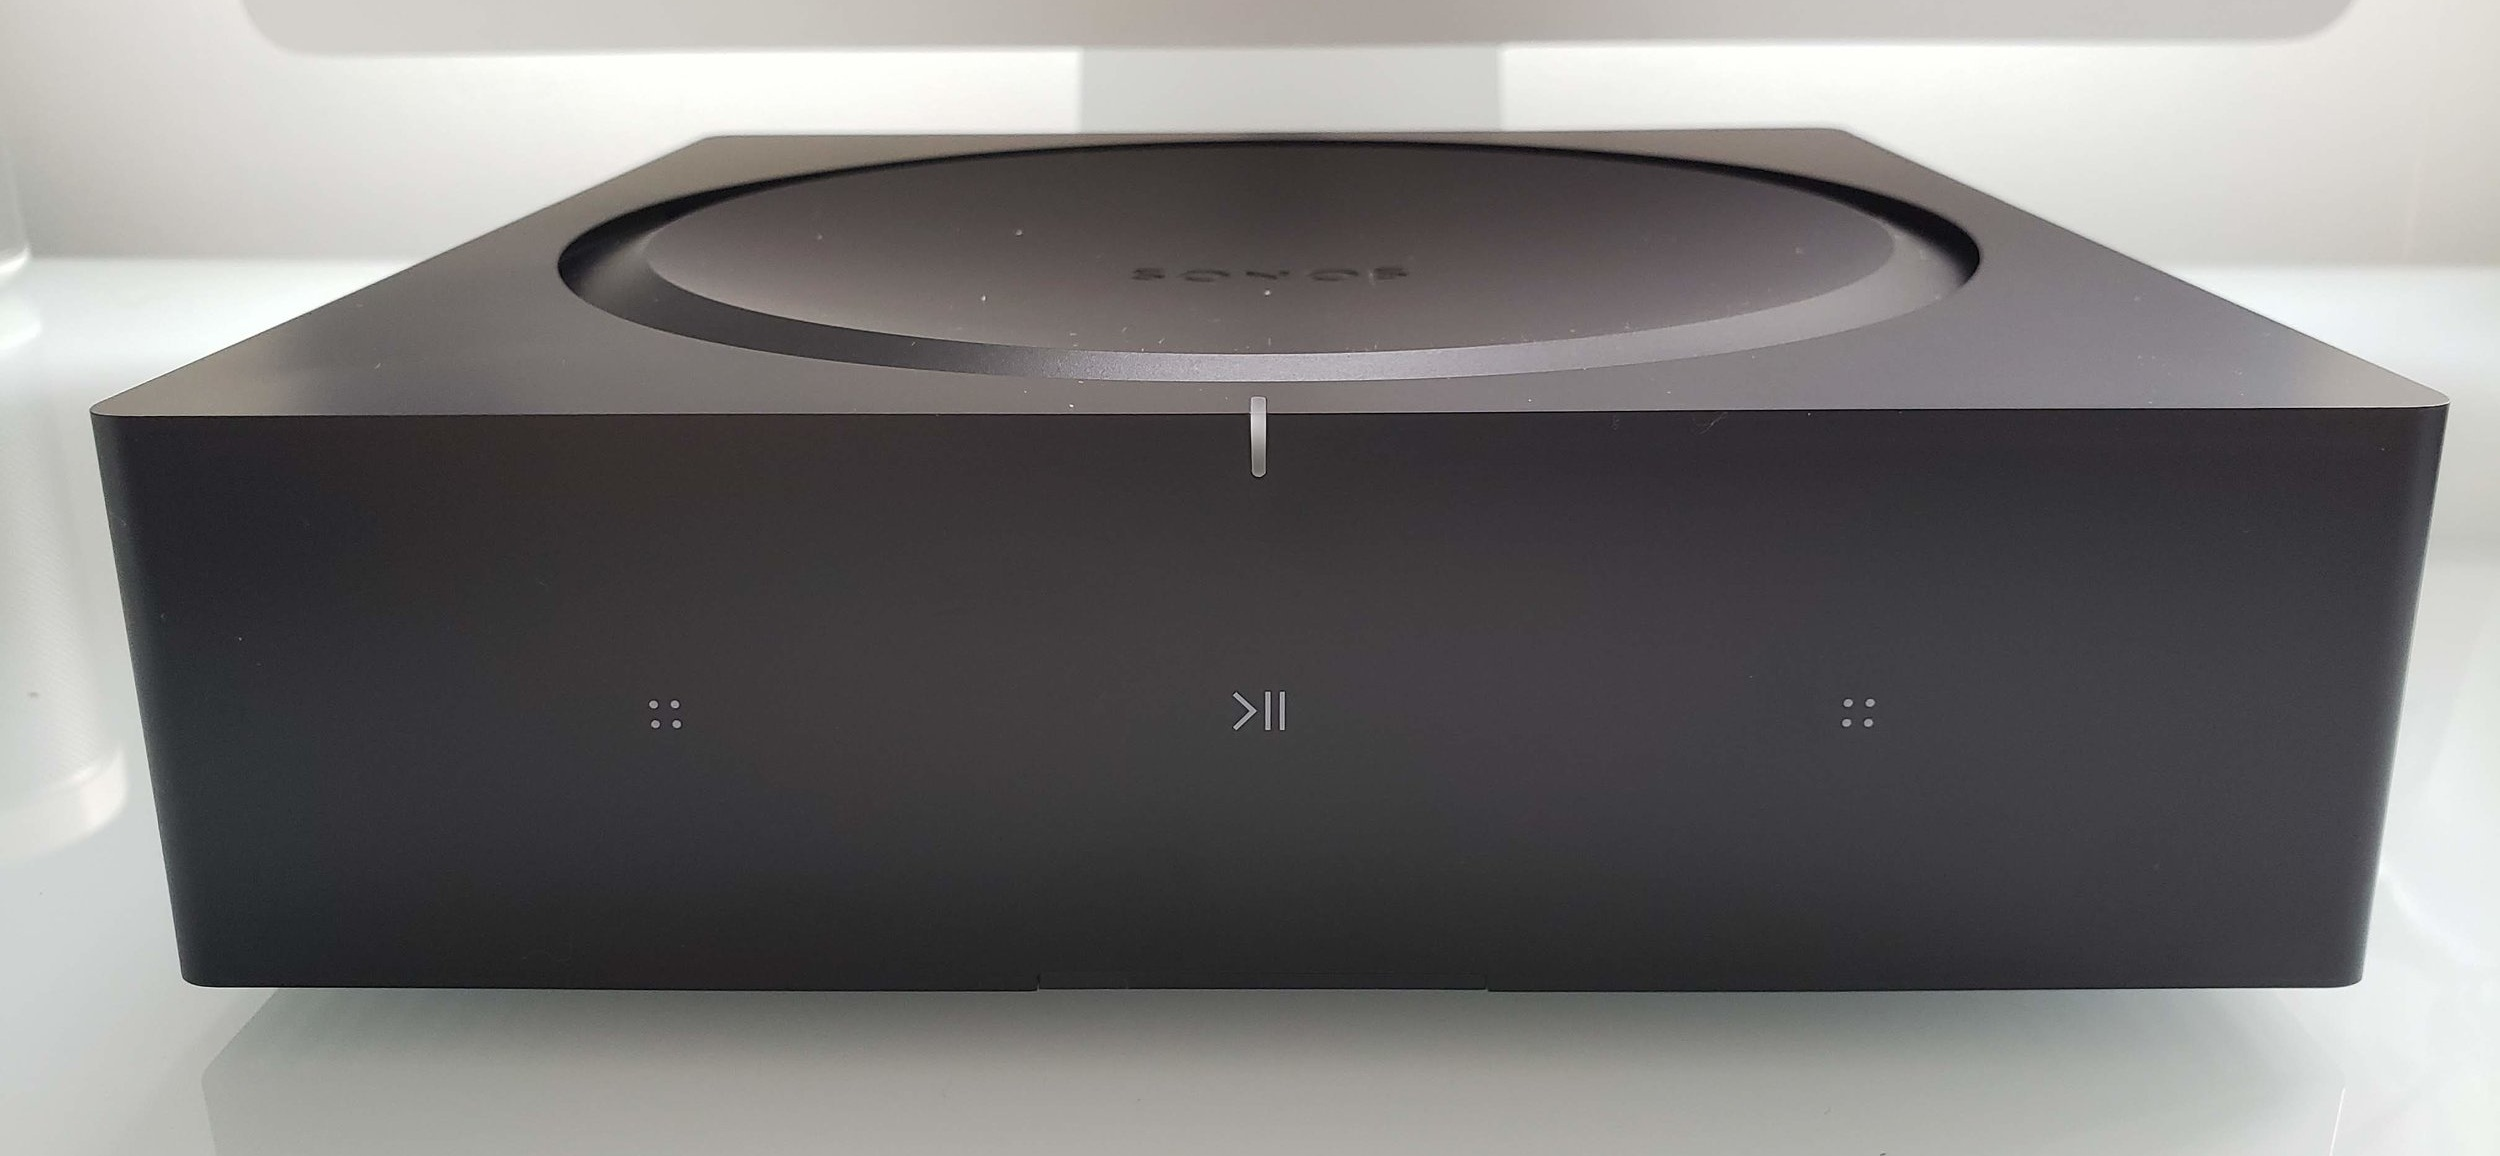 Sonos Amp 2019 Review: Front view of the  New Sonos Amp  with capacitive touch controls.